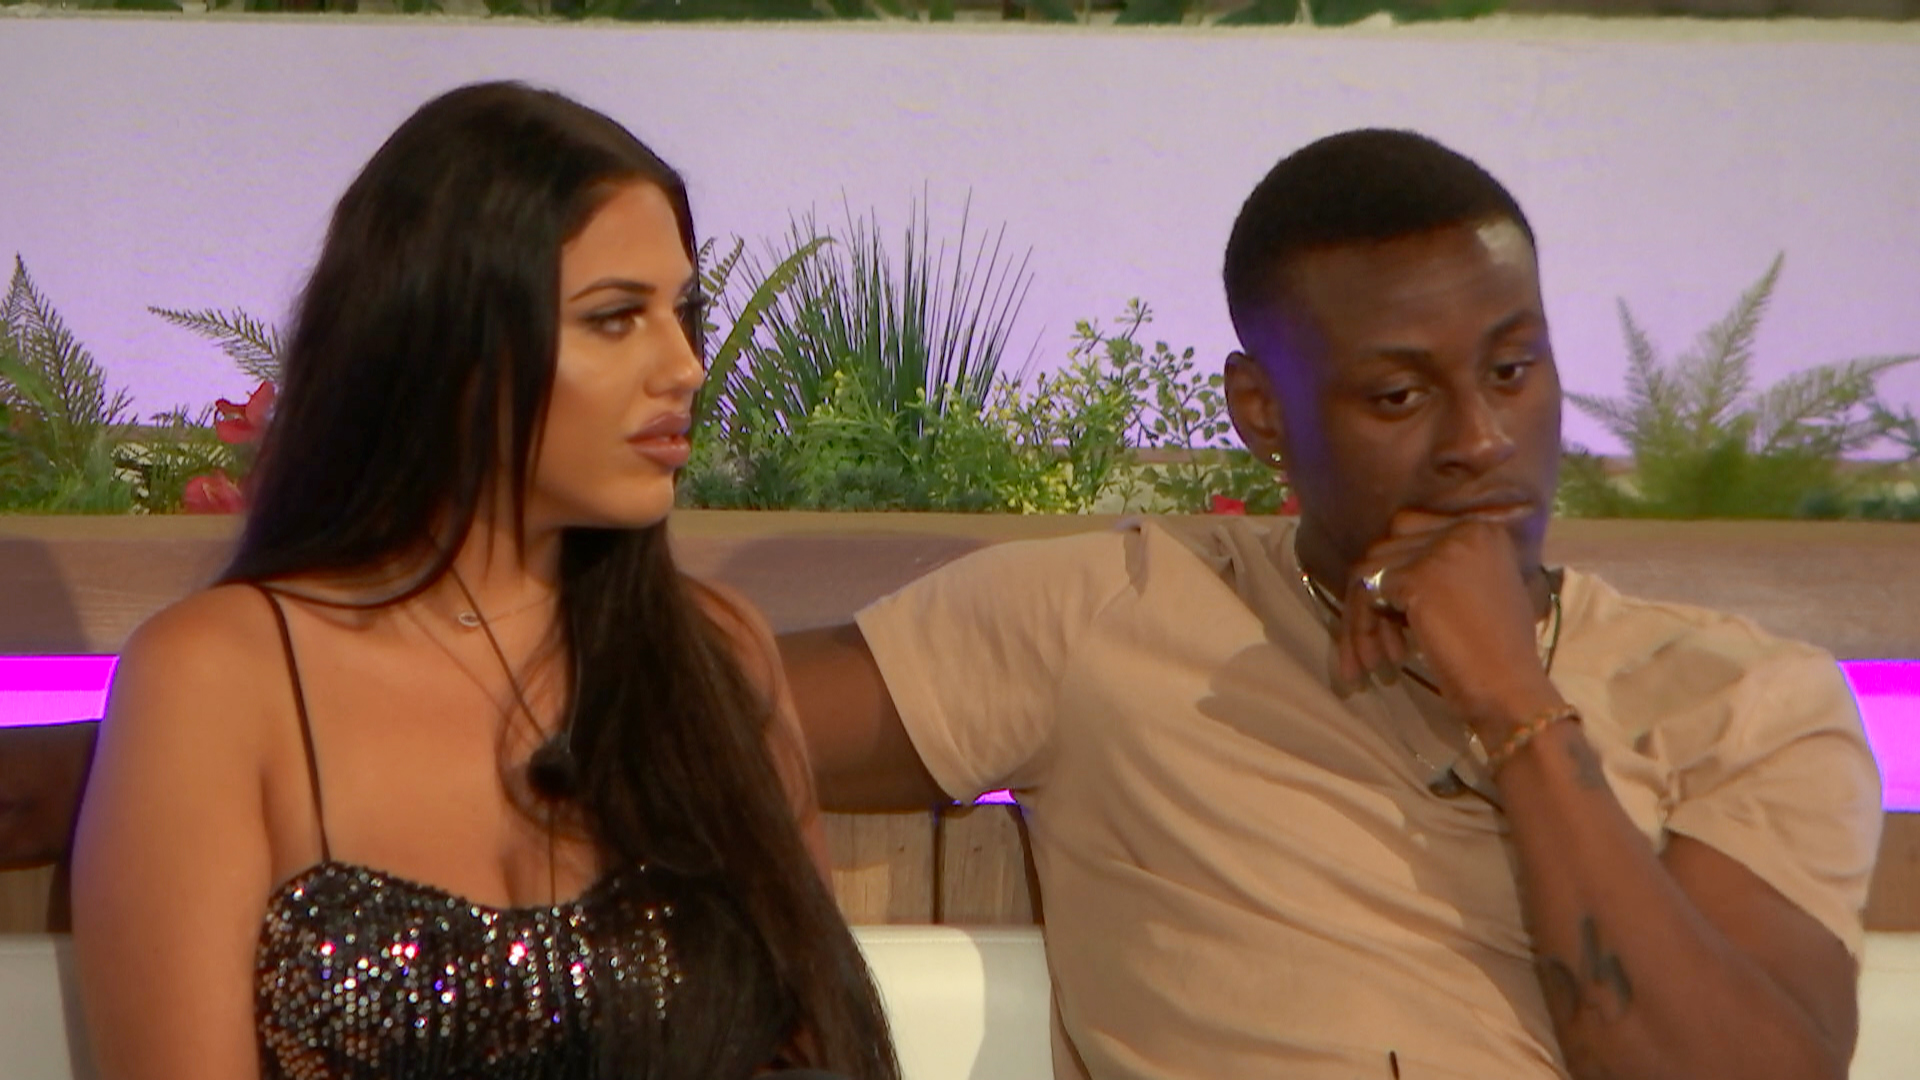 Sherif kicked out of villa - Love Island 2019